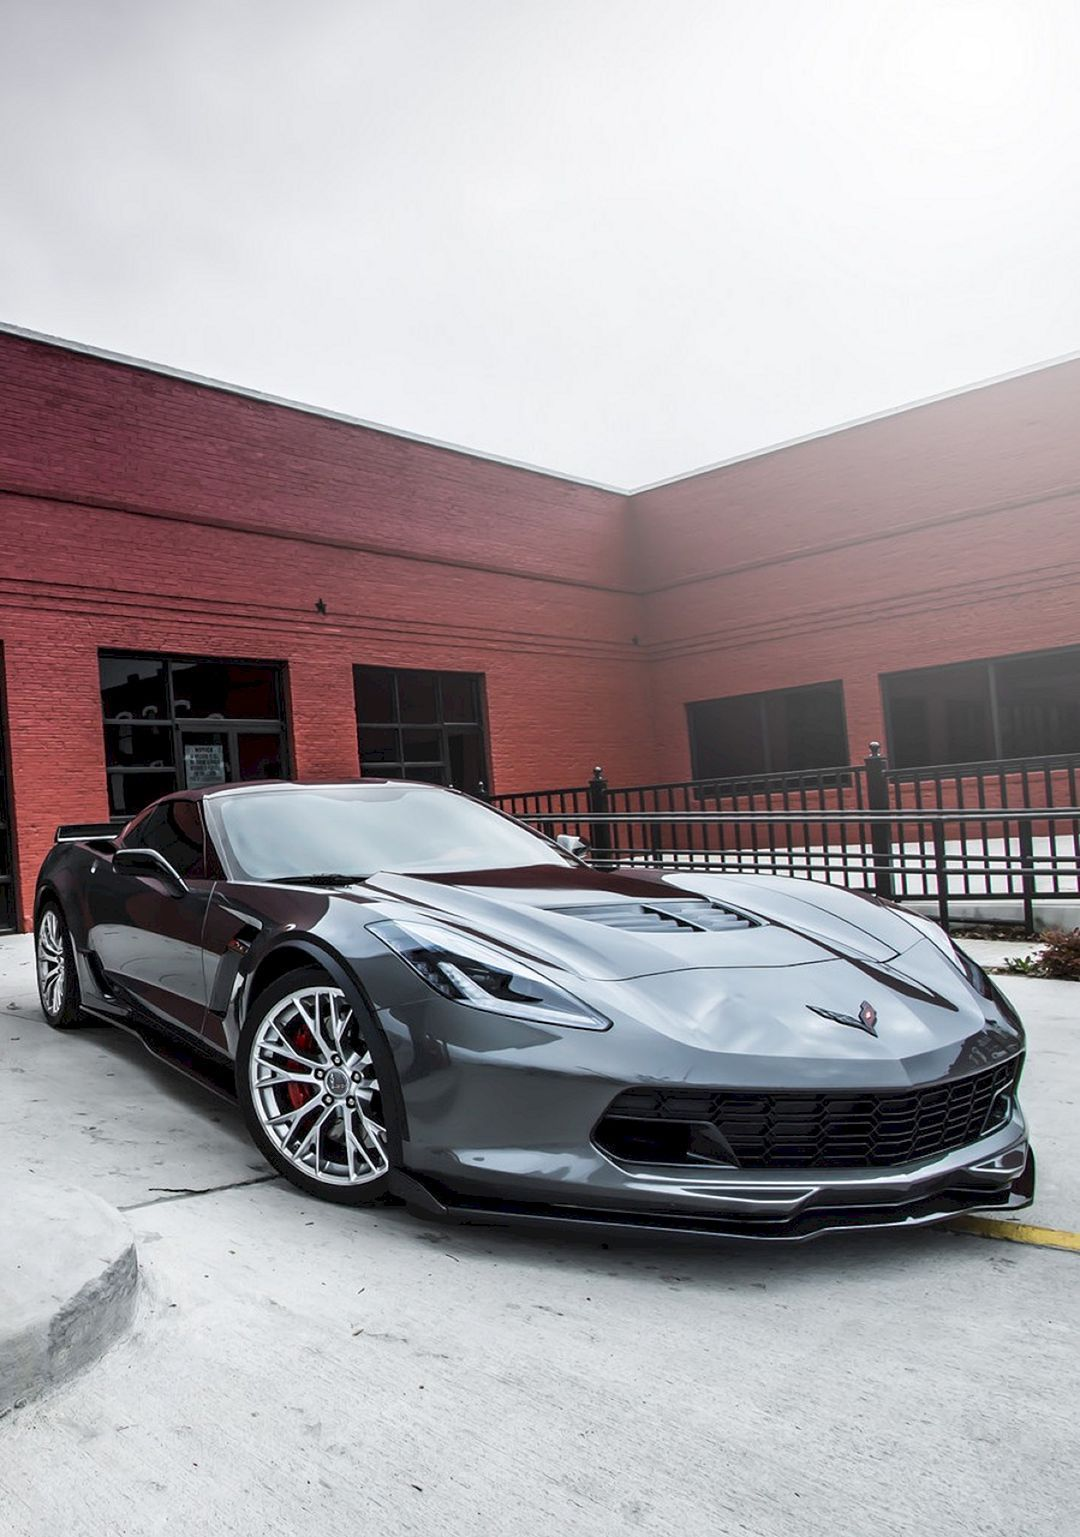 45 Best Chevrolet Corvette Modifications That Will Inspire Your Collections